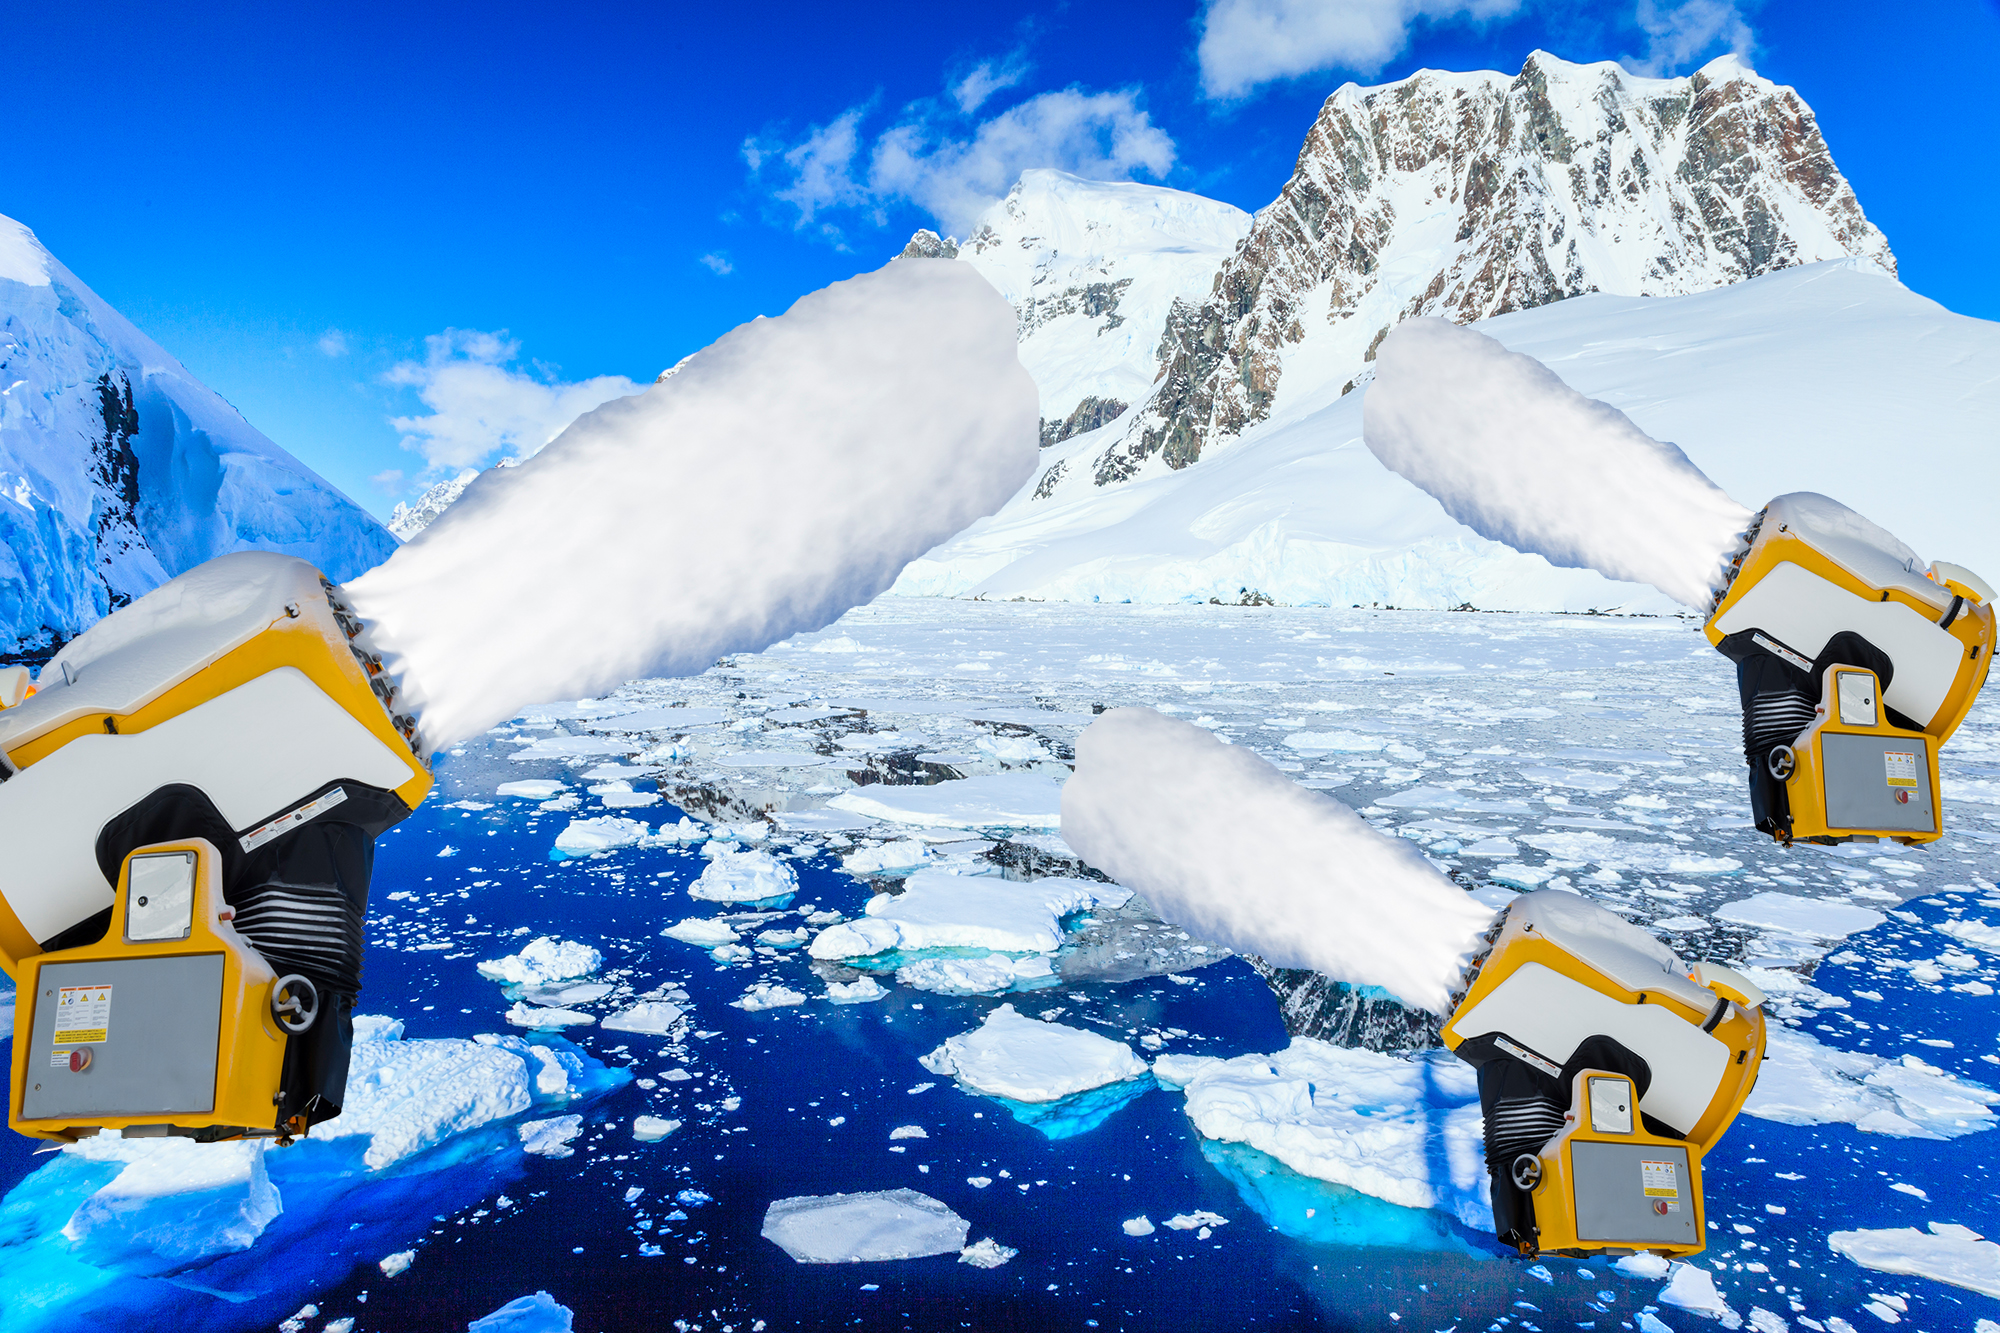 This Plan to Stop Sea Level Rise by Blasting Antarctica With Snow Is Extremely Wild